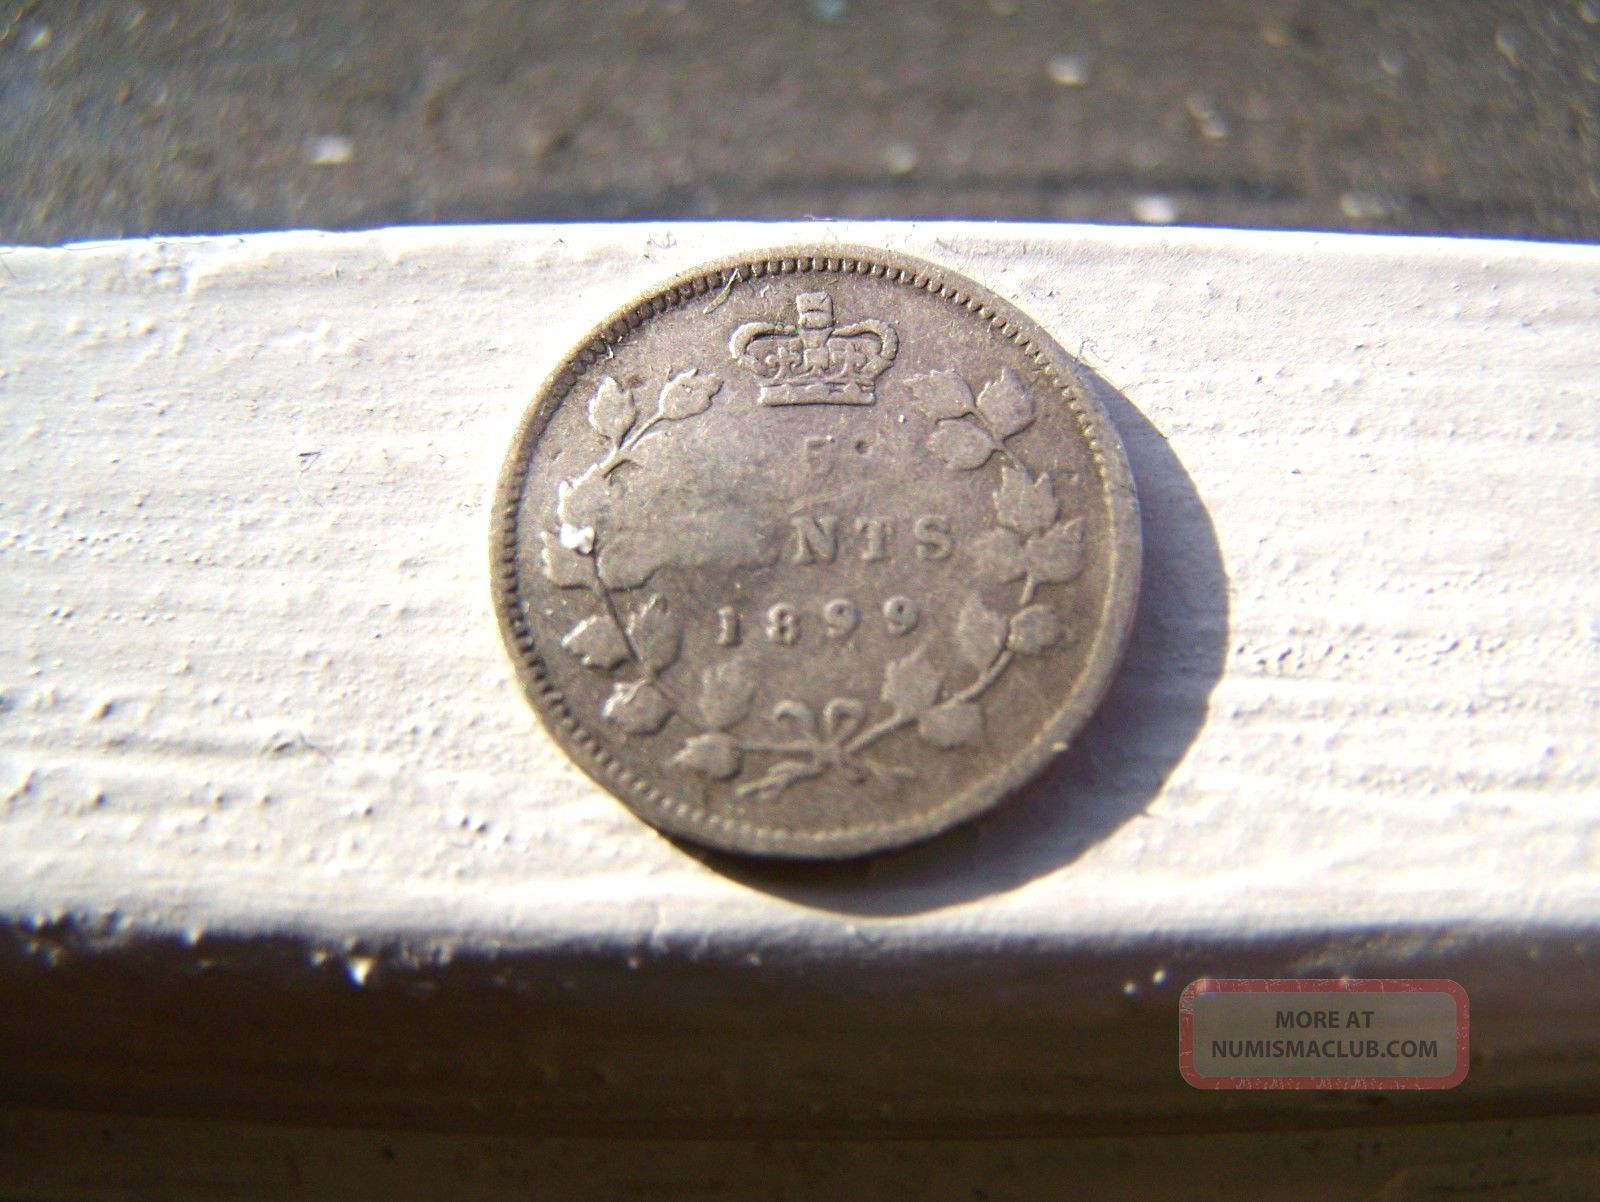 Scarce Old 1899 Canada Canadian Silver Victoria 5 Cent Coin